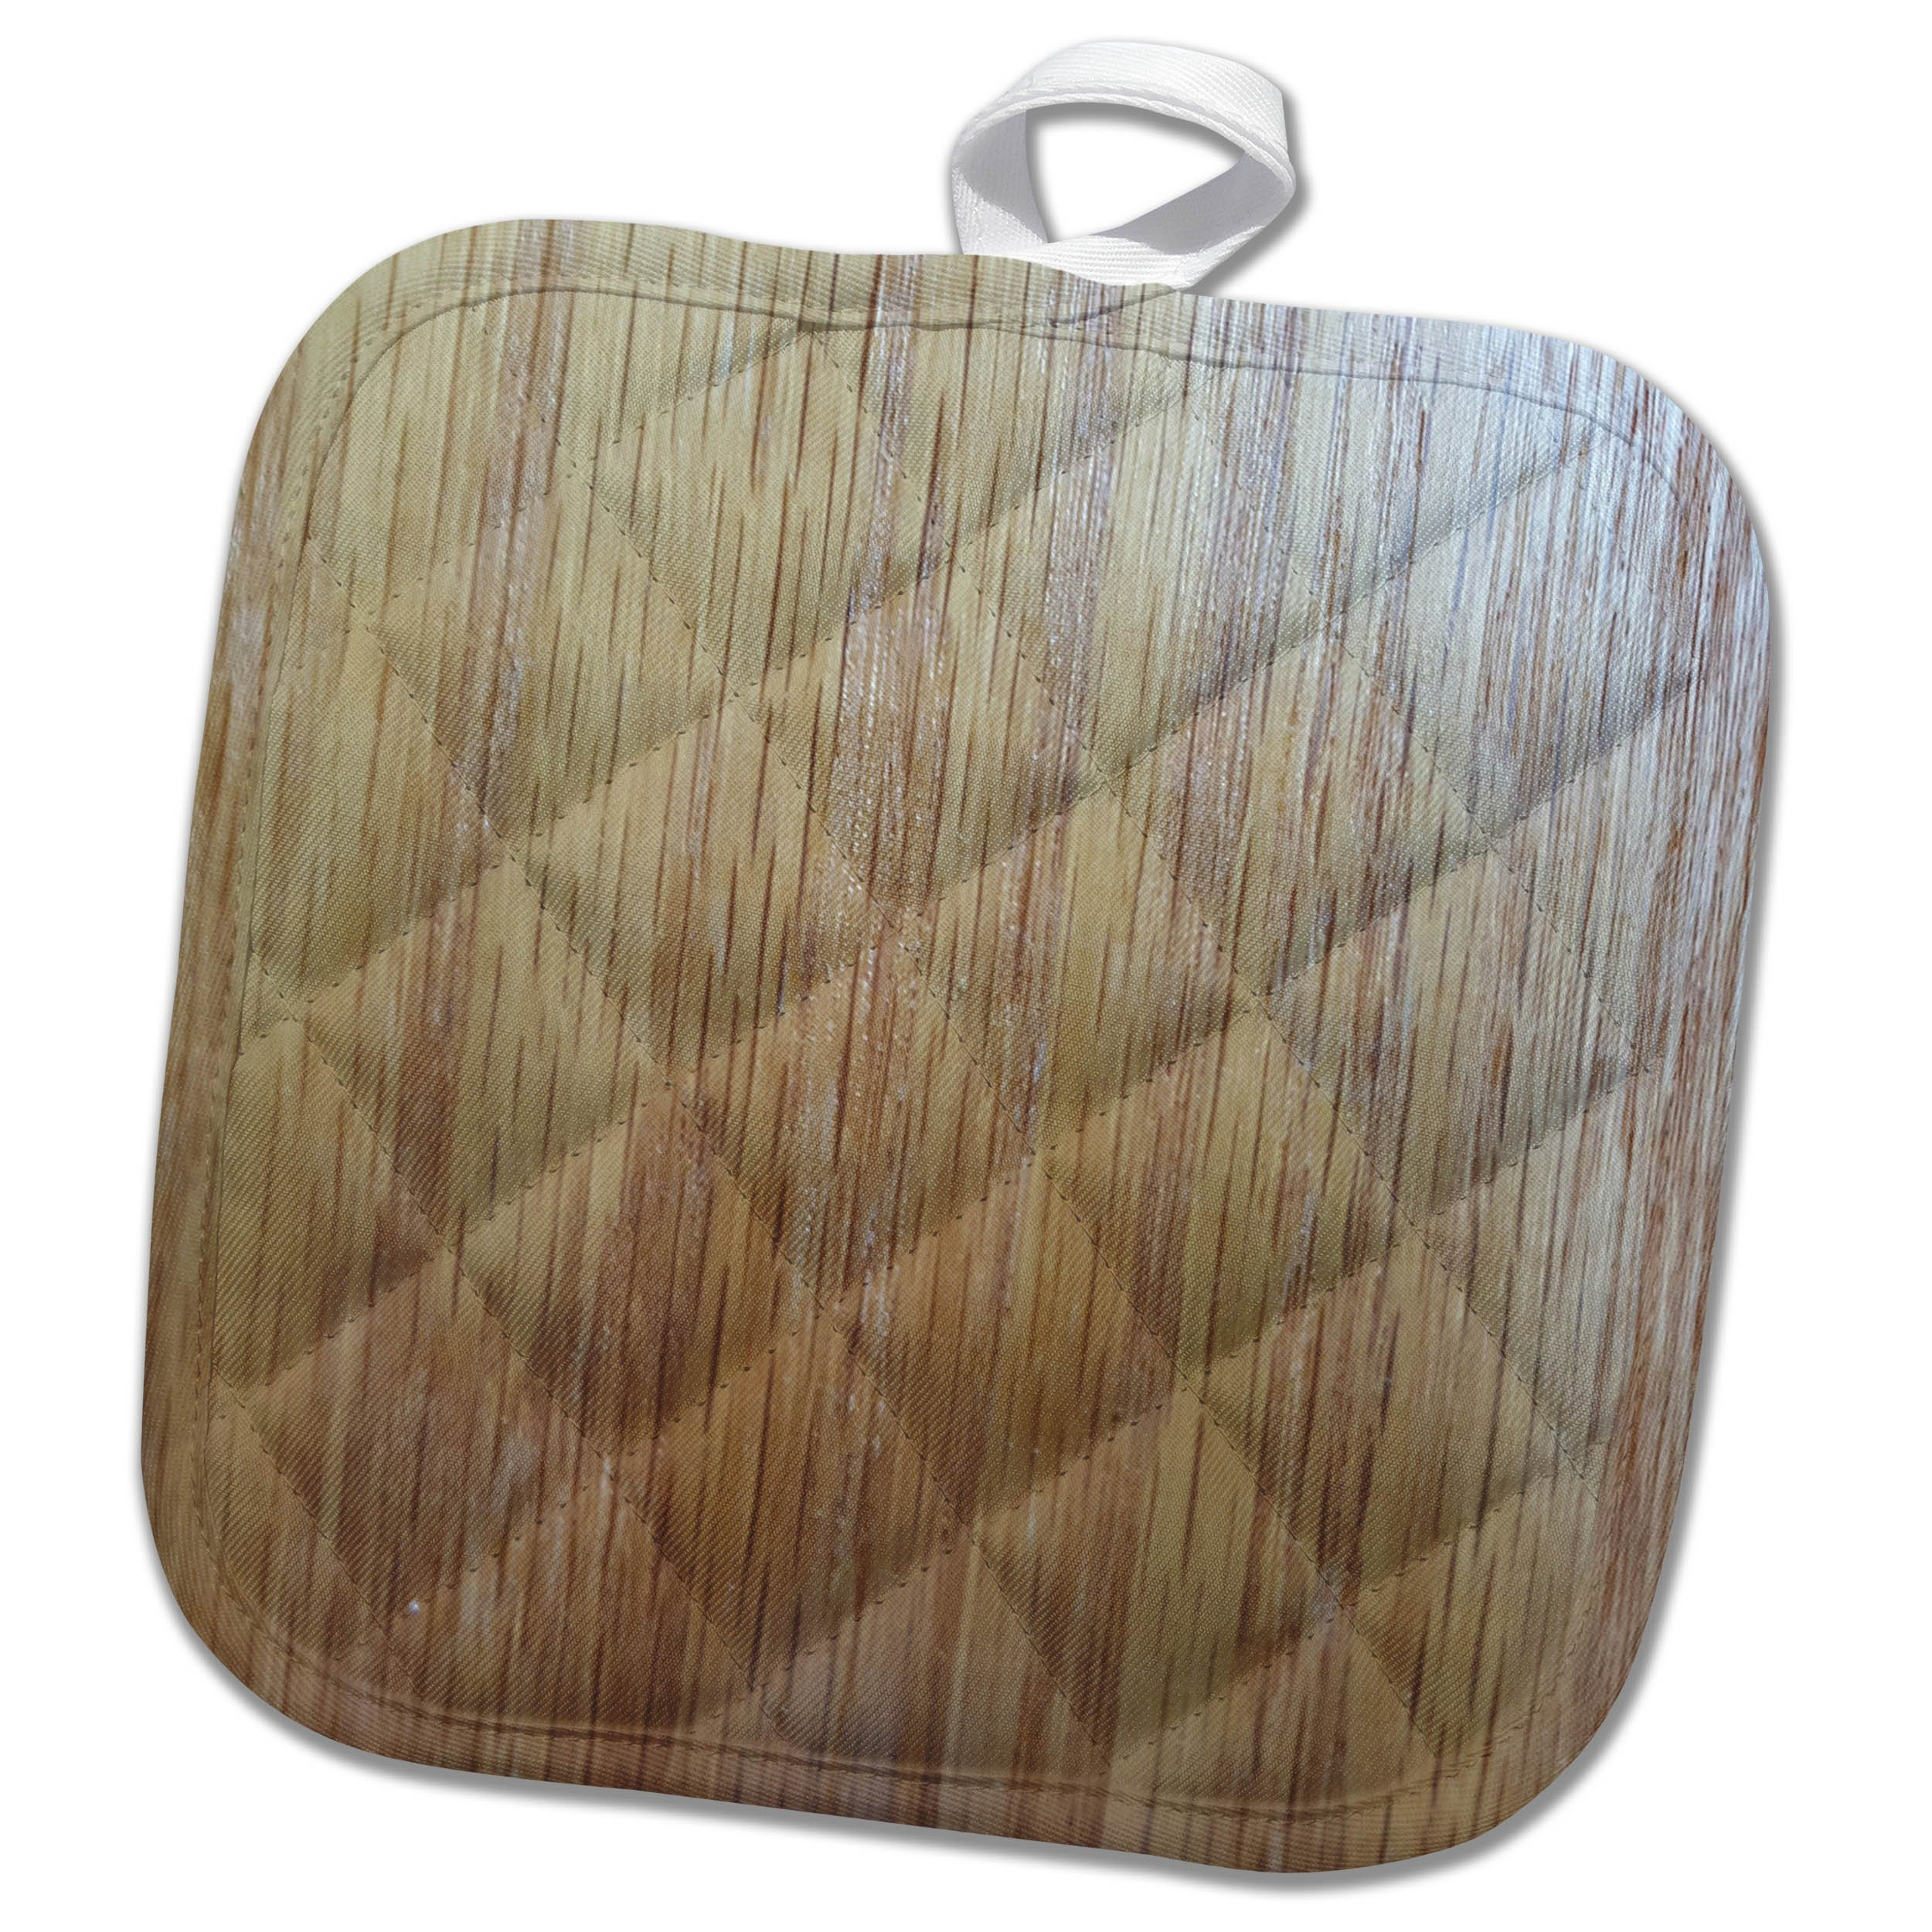 3dRose TDSwhite – Miscellaneous Photography - Pressed Wood Grain Photo - 8x8 Potholder (phl_285299_1)